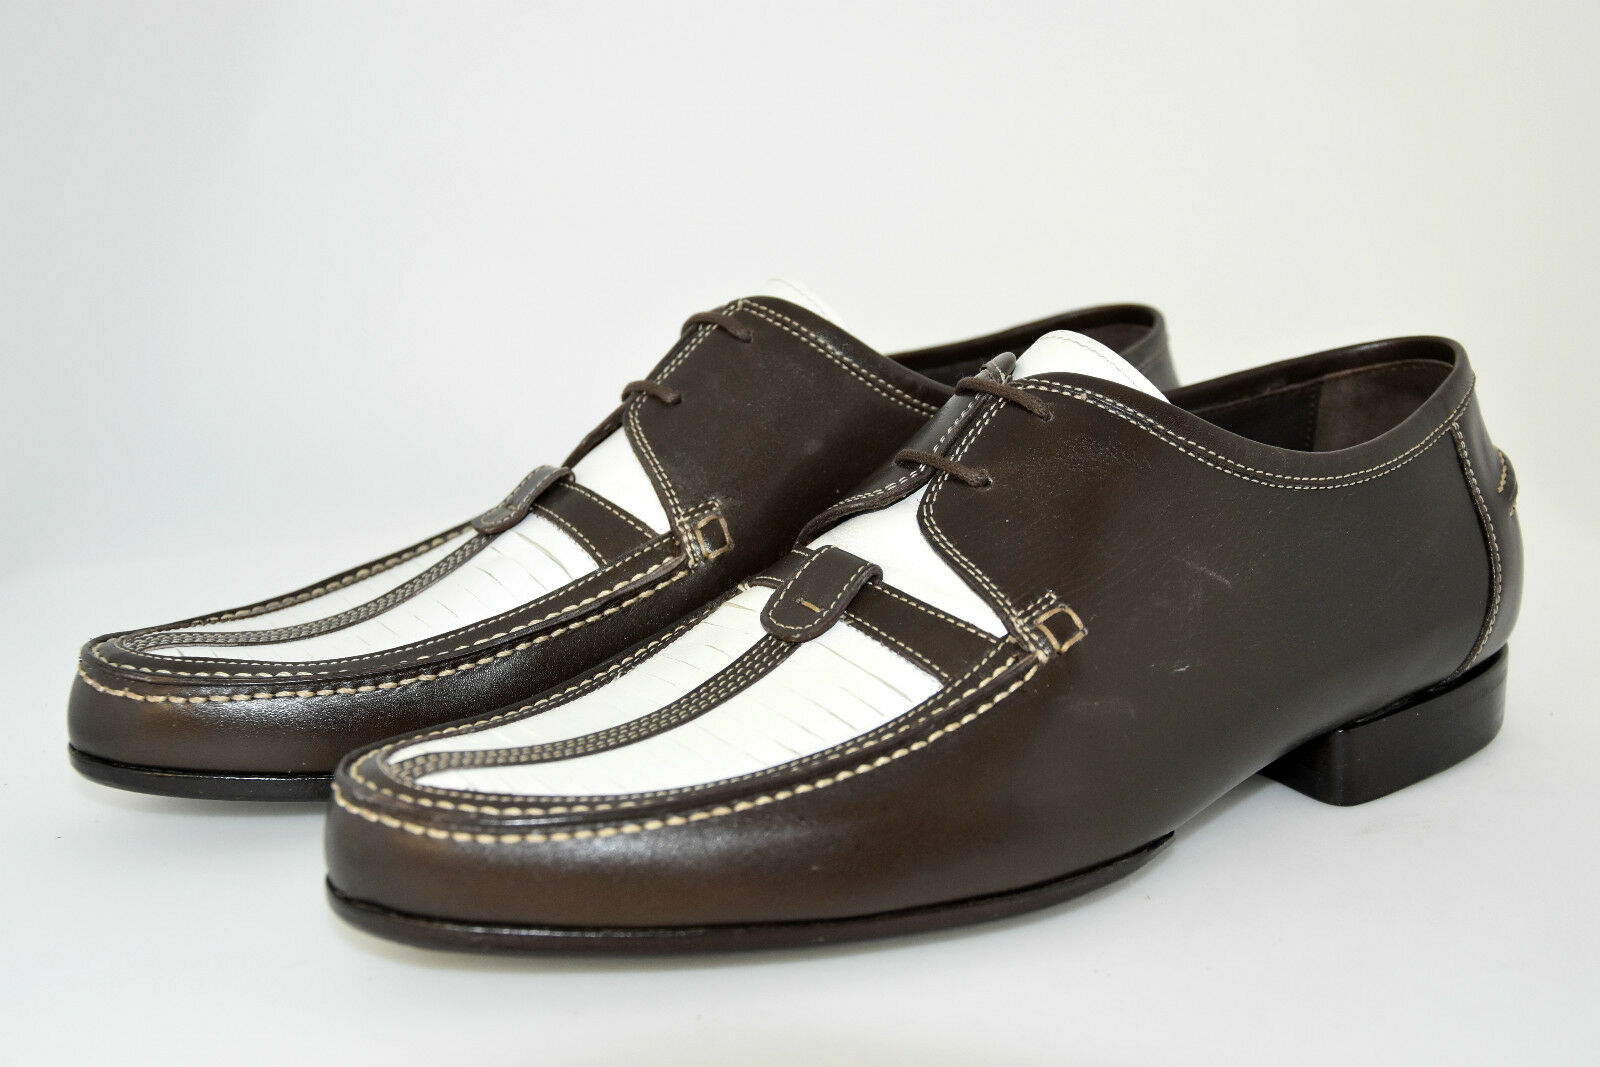 MAN-8eu-9usa-DERBY-DARK BROWN+WHITE CALF-VITELLO T.MORO-LEATHER T.MORO-LEATHER T.MORO-LEATHER SOLE-SUOLA CUOIO 8a4418